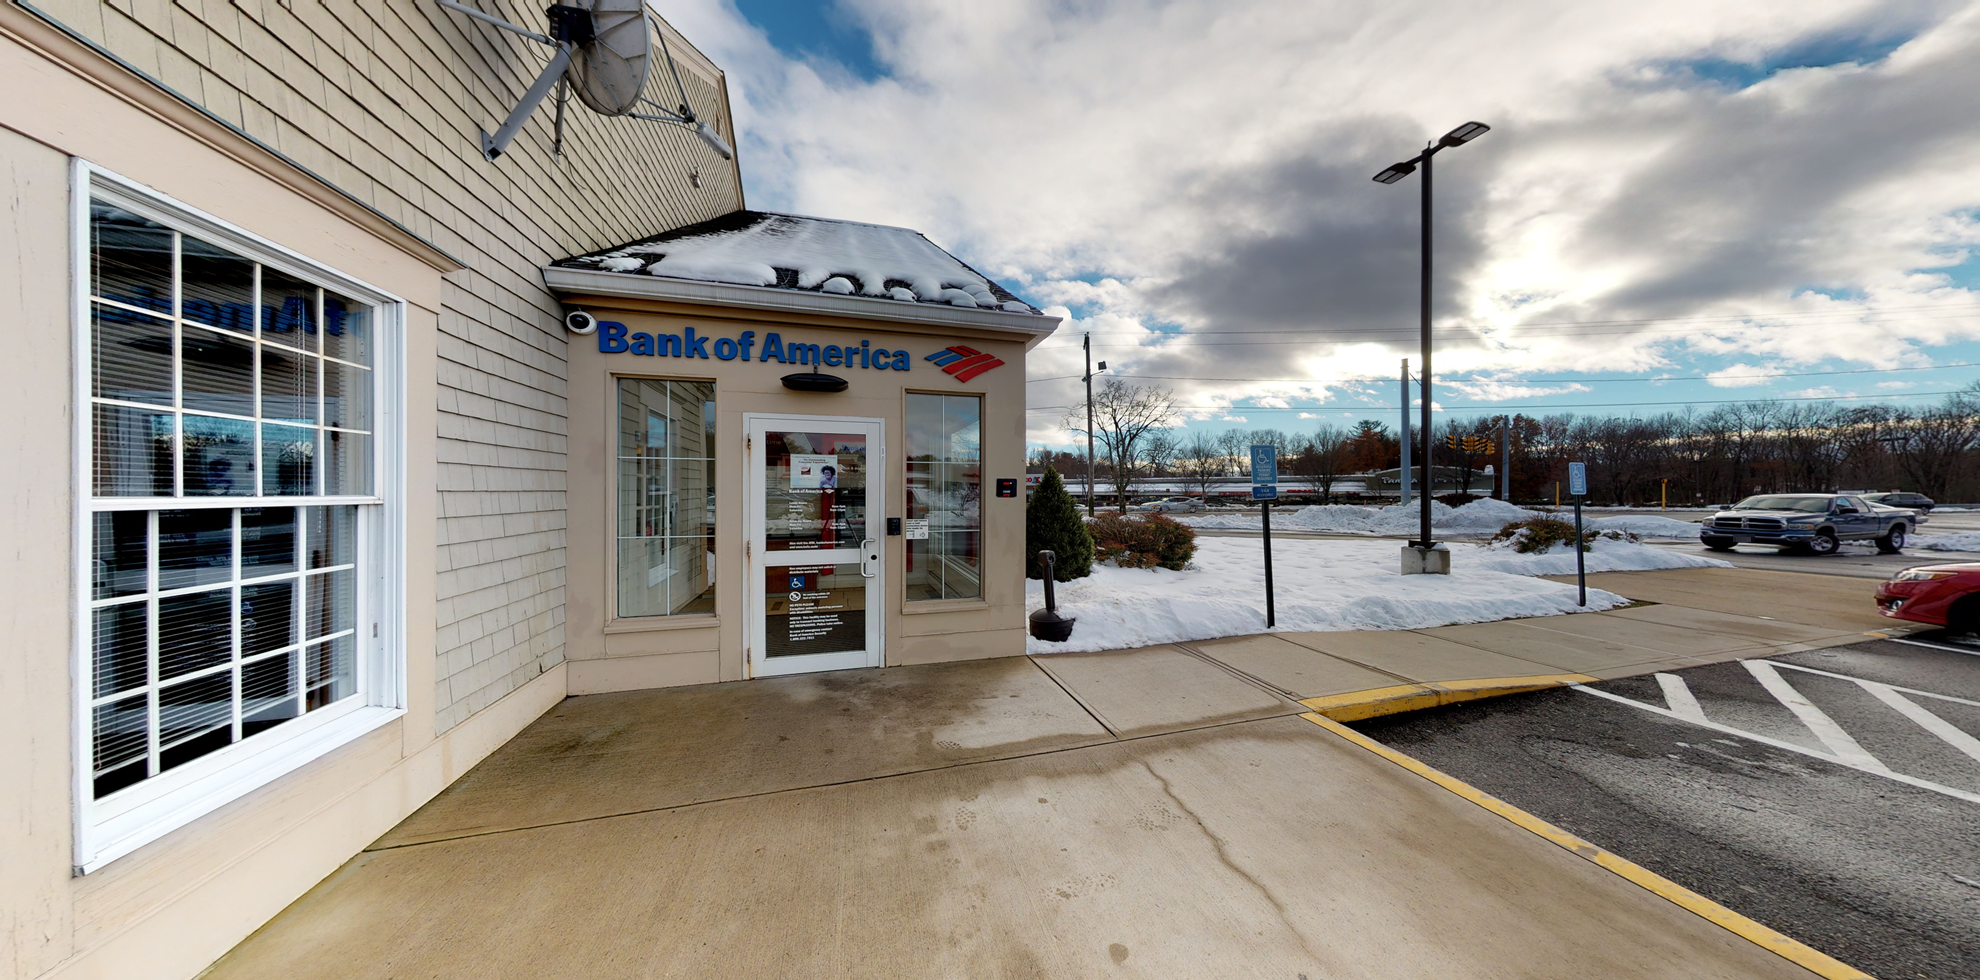 Bank of America financial center with drive-thru ATM and teller   431 N Main St, East Longmeadow, MA 01028